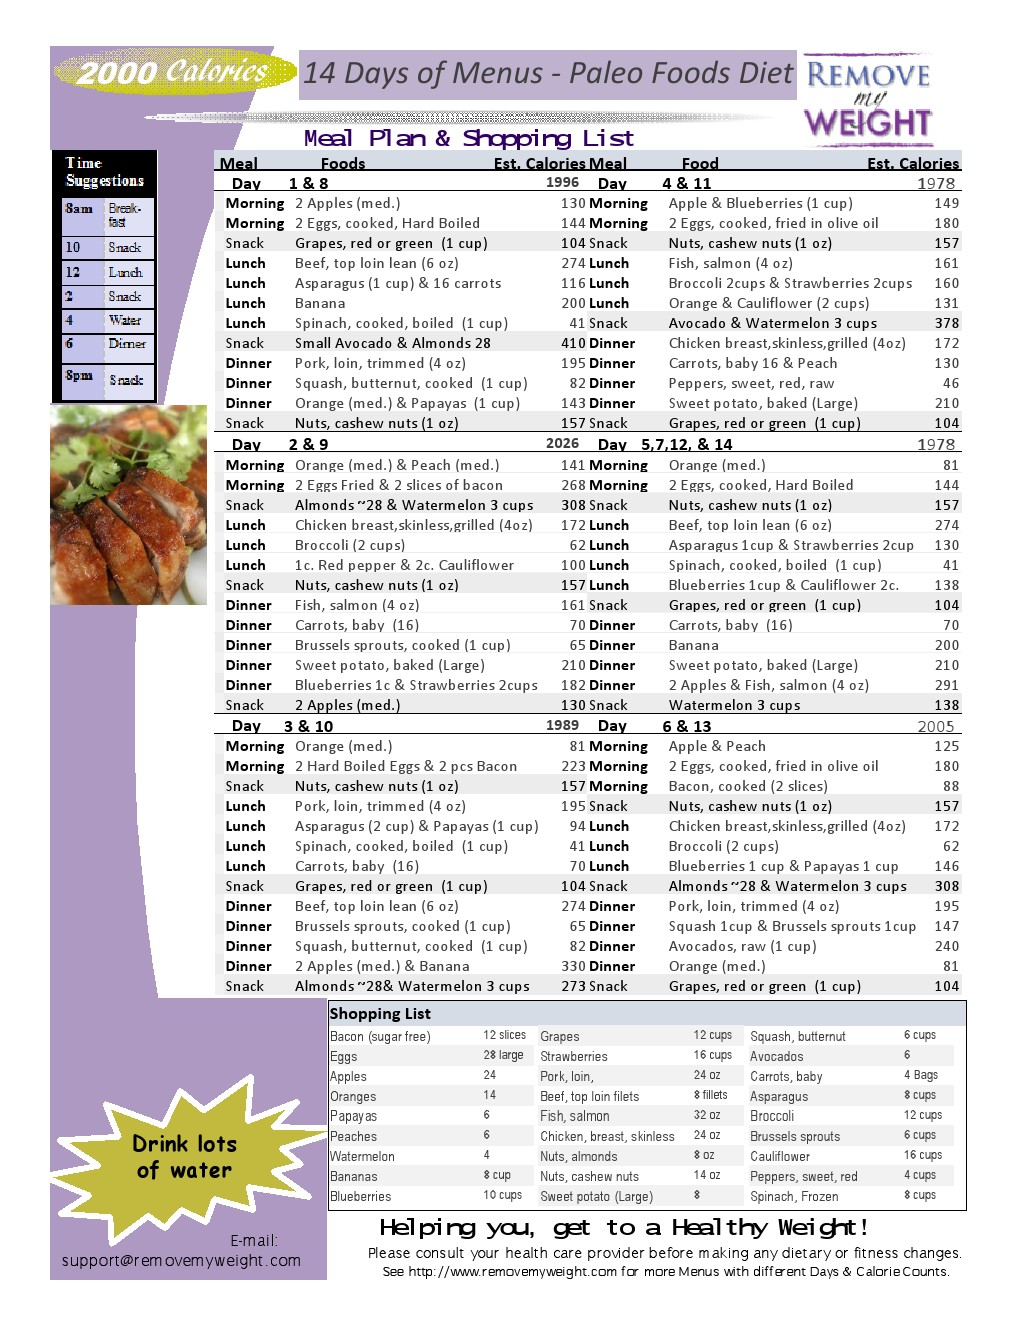 Free 2000 Calories a day 14 Day Paleo Diet with Shoppong List - Printable - Menu Plan for Weight ...